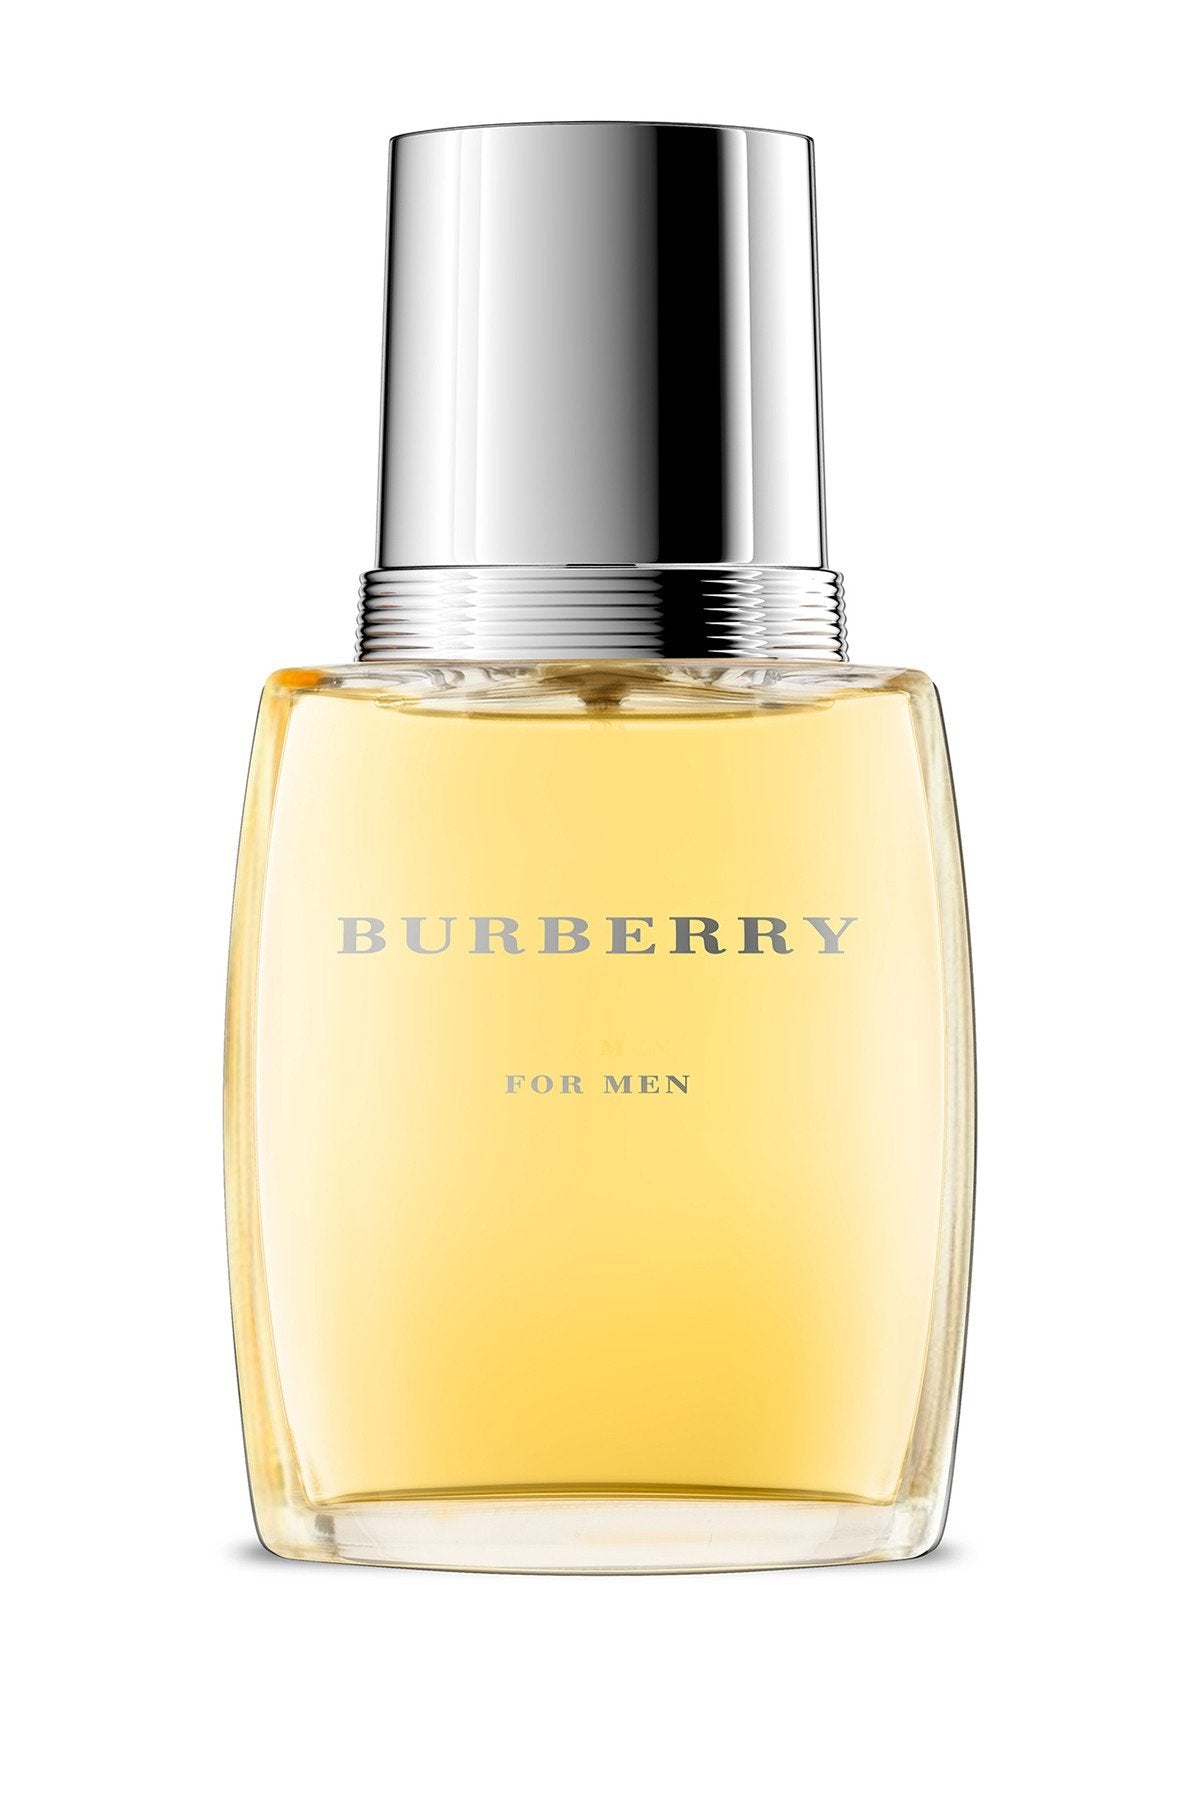 Burberry Eau De Toilette Spray - Prestige Fragrance